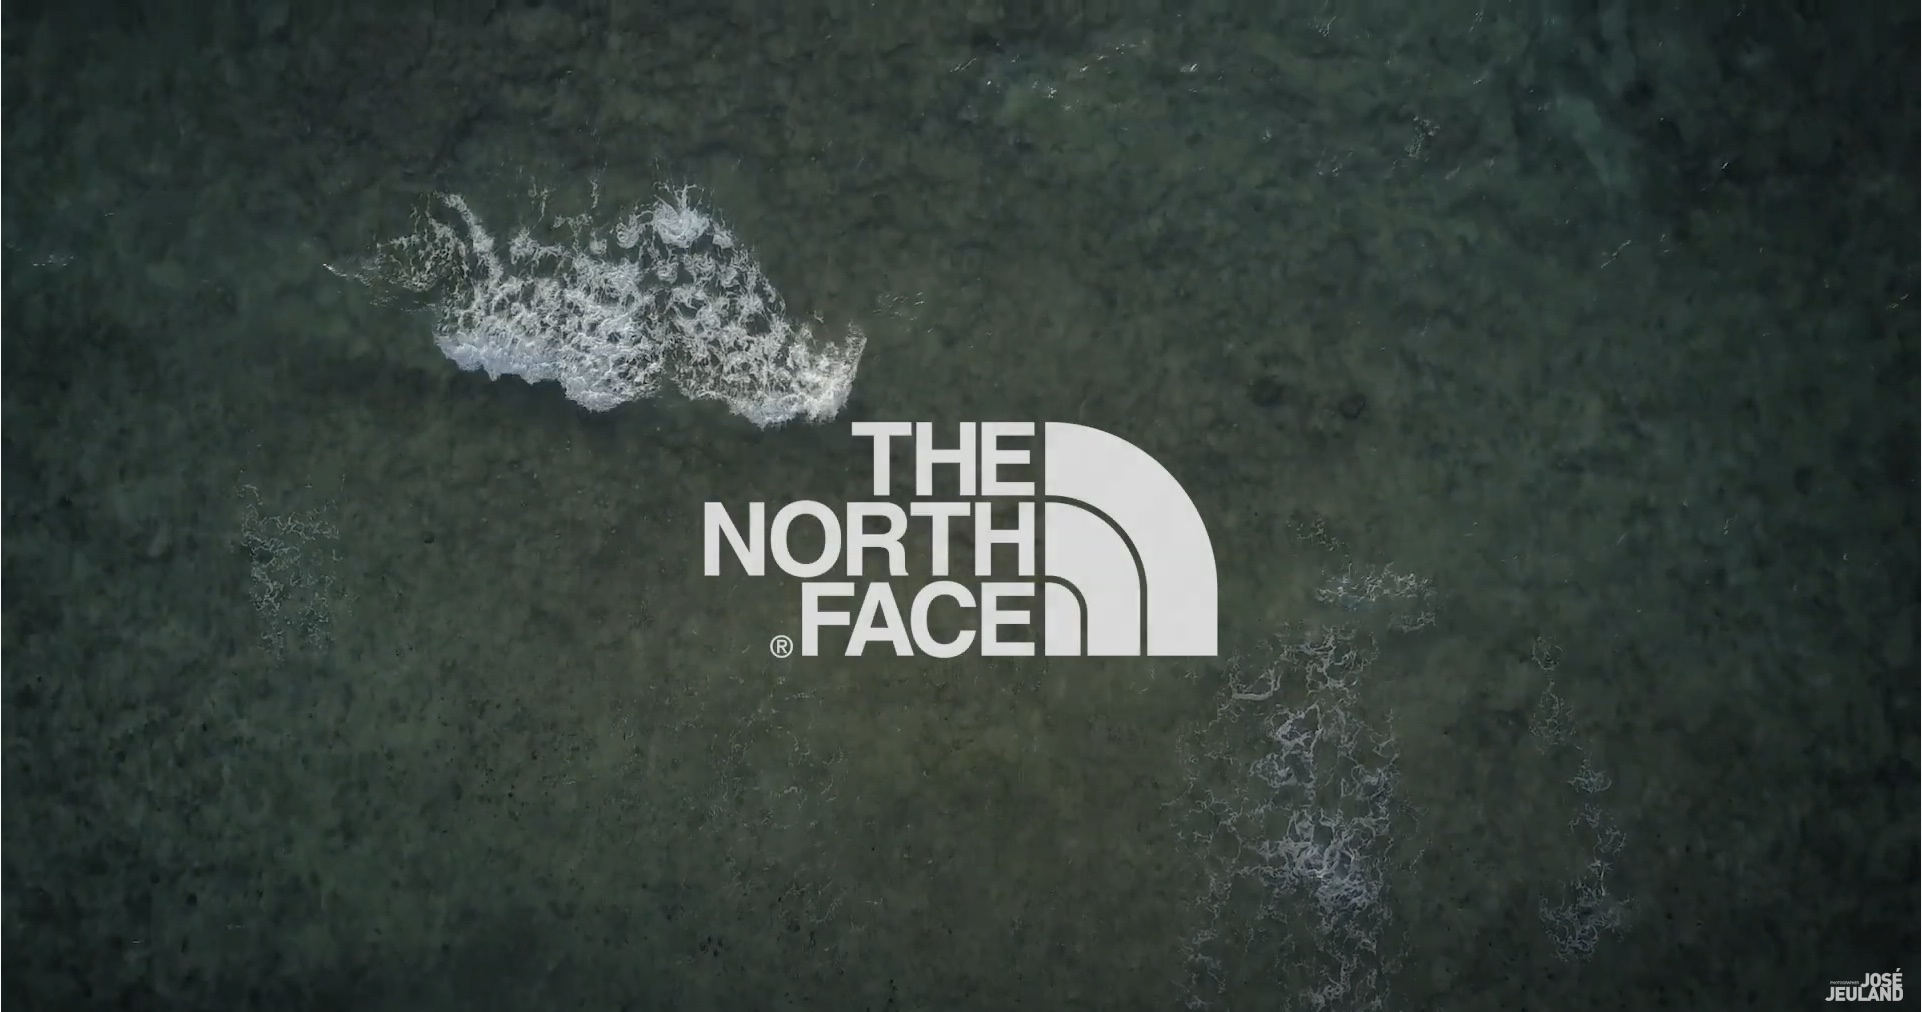 The NorthFace Video Production Cover COCO Creative Studio Singapore 1